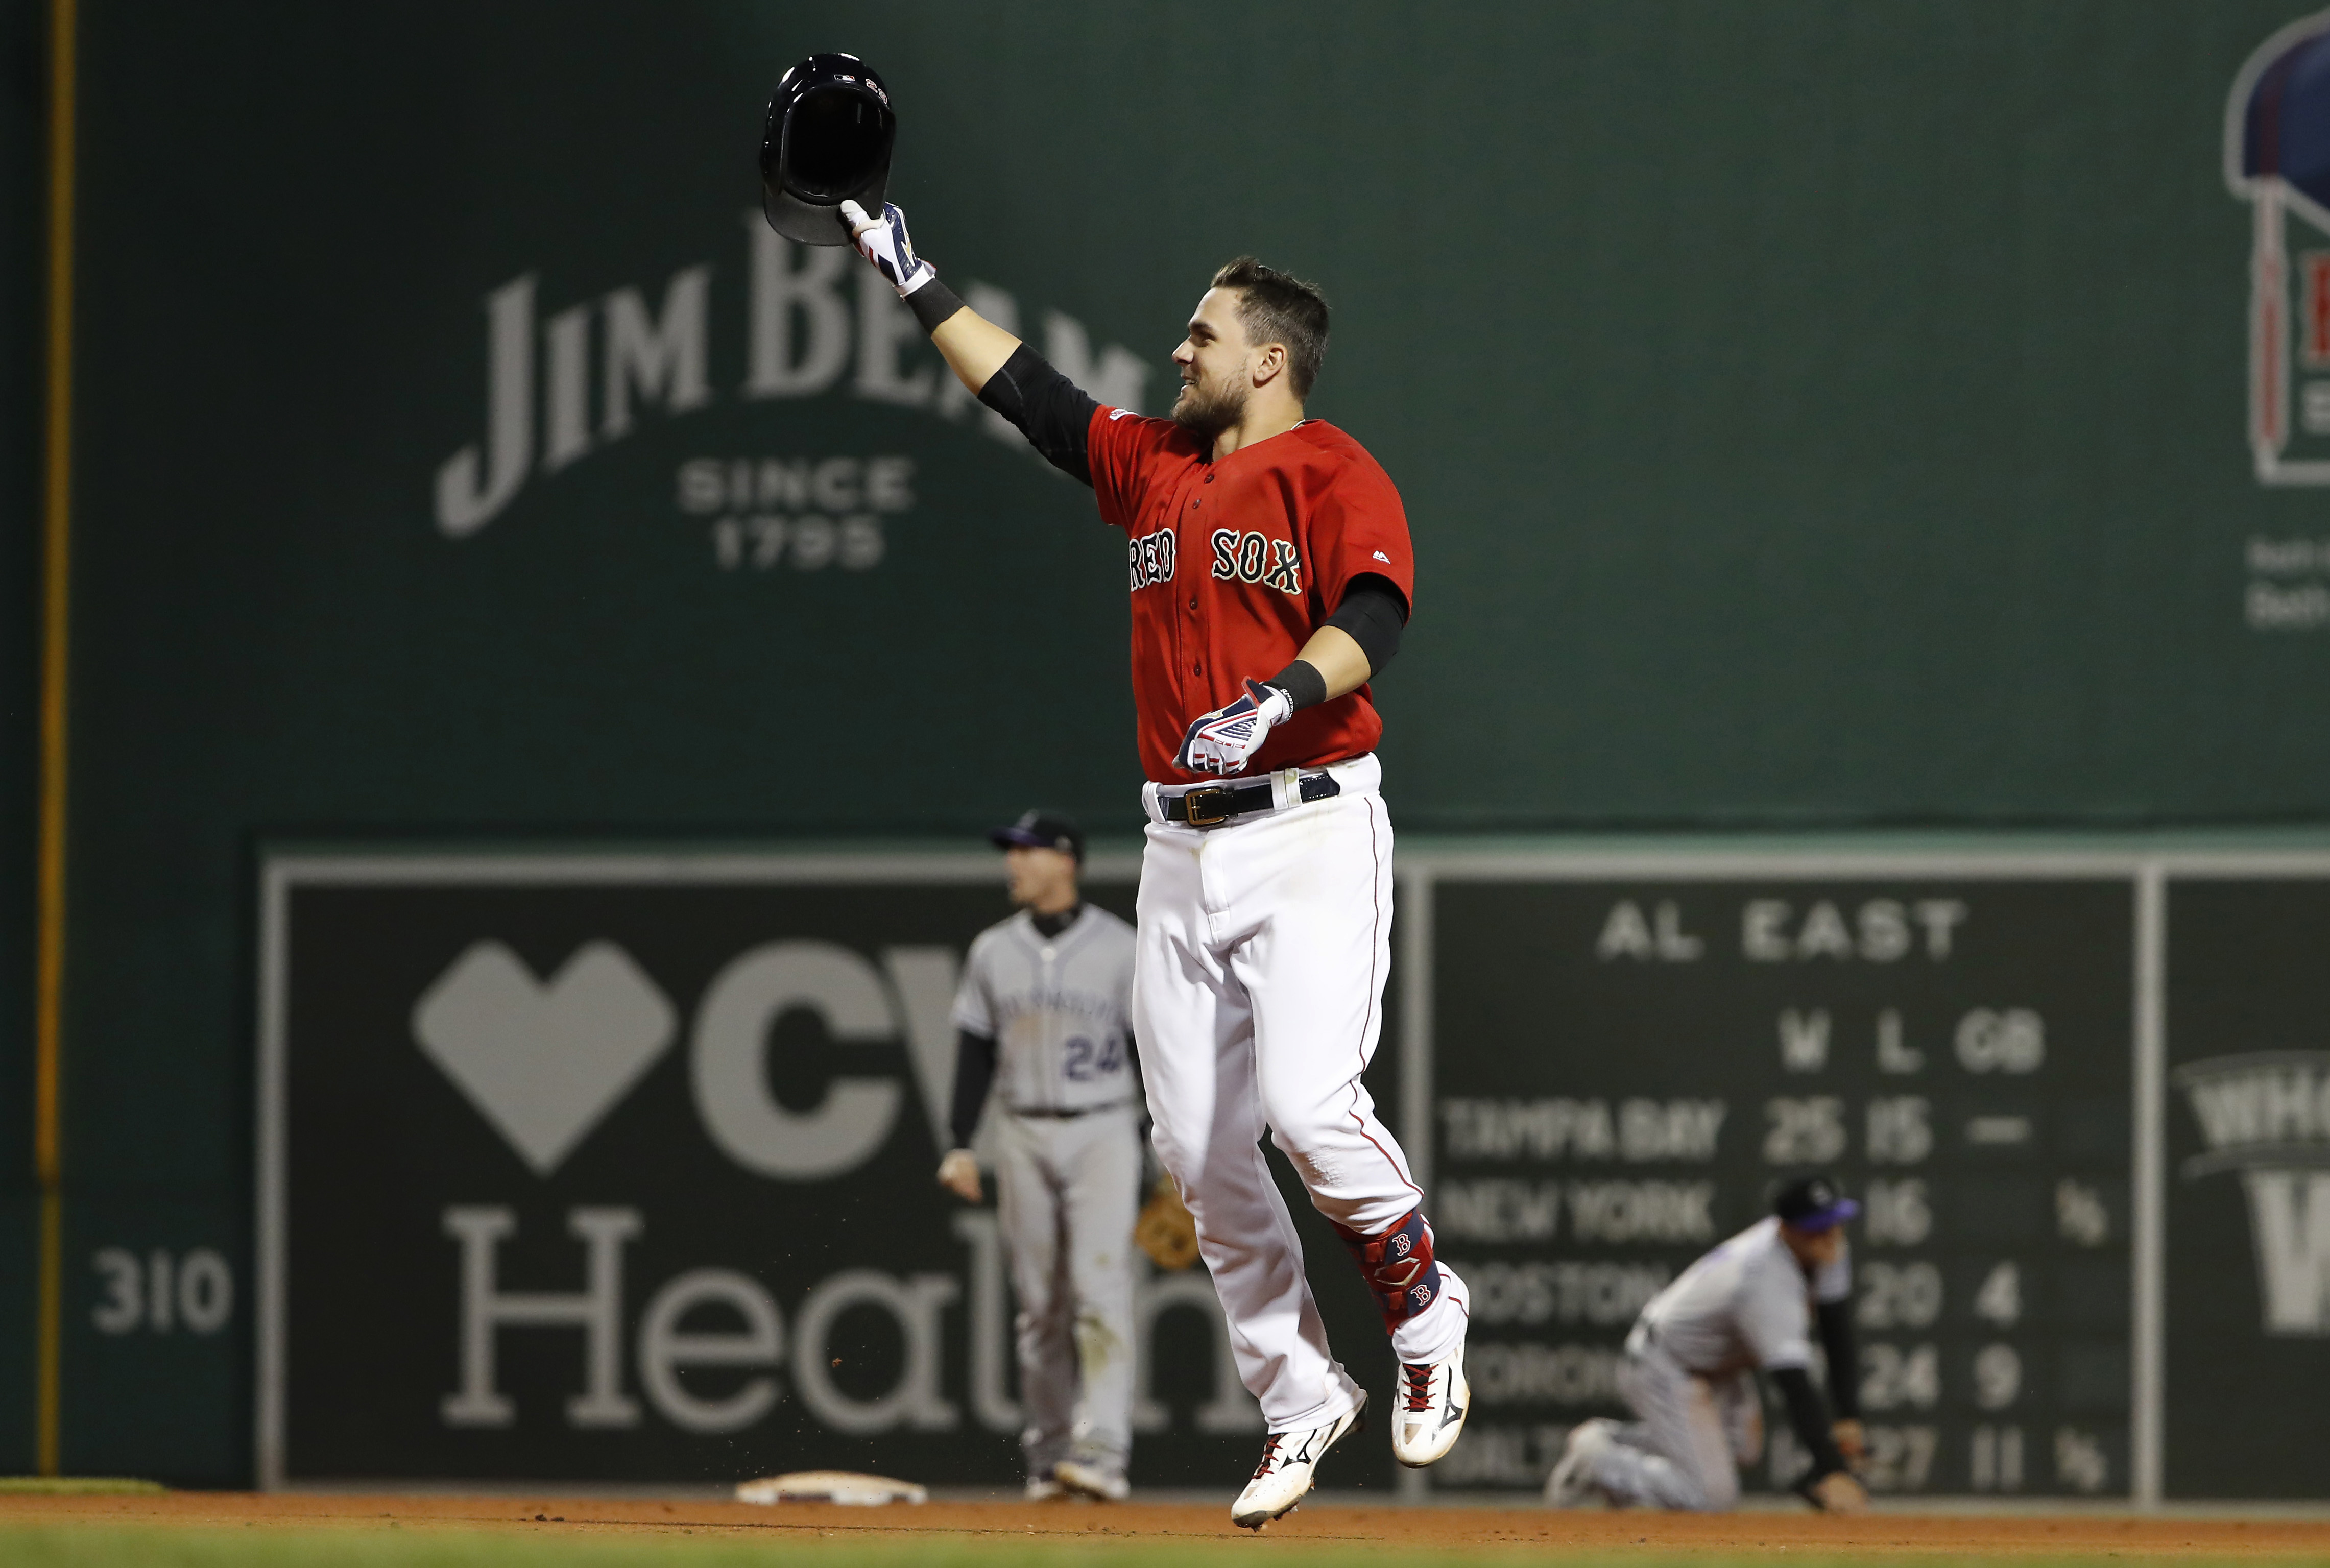 boston red sox vs houston astros live stream free